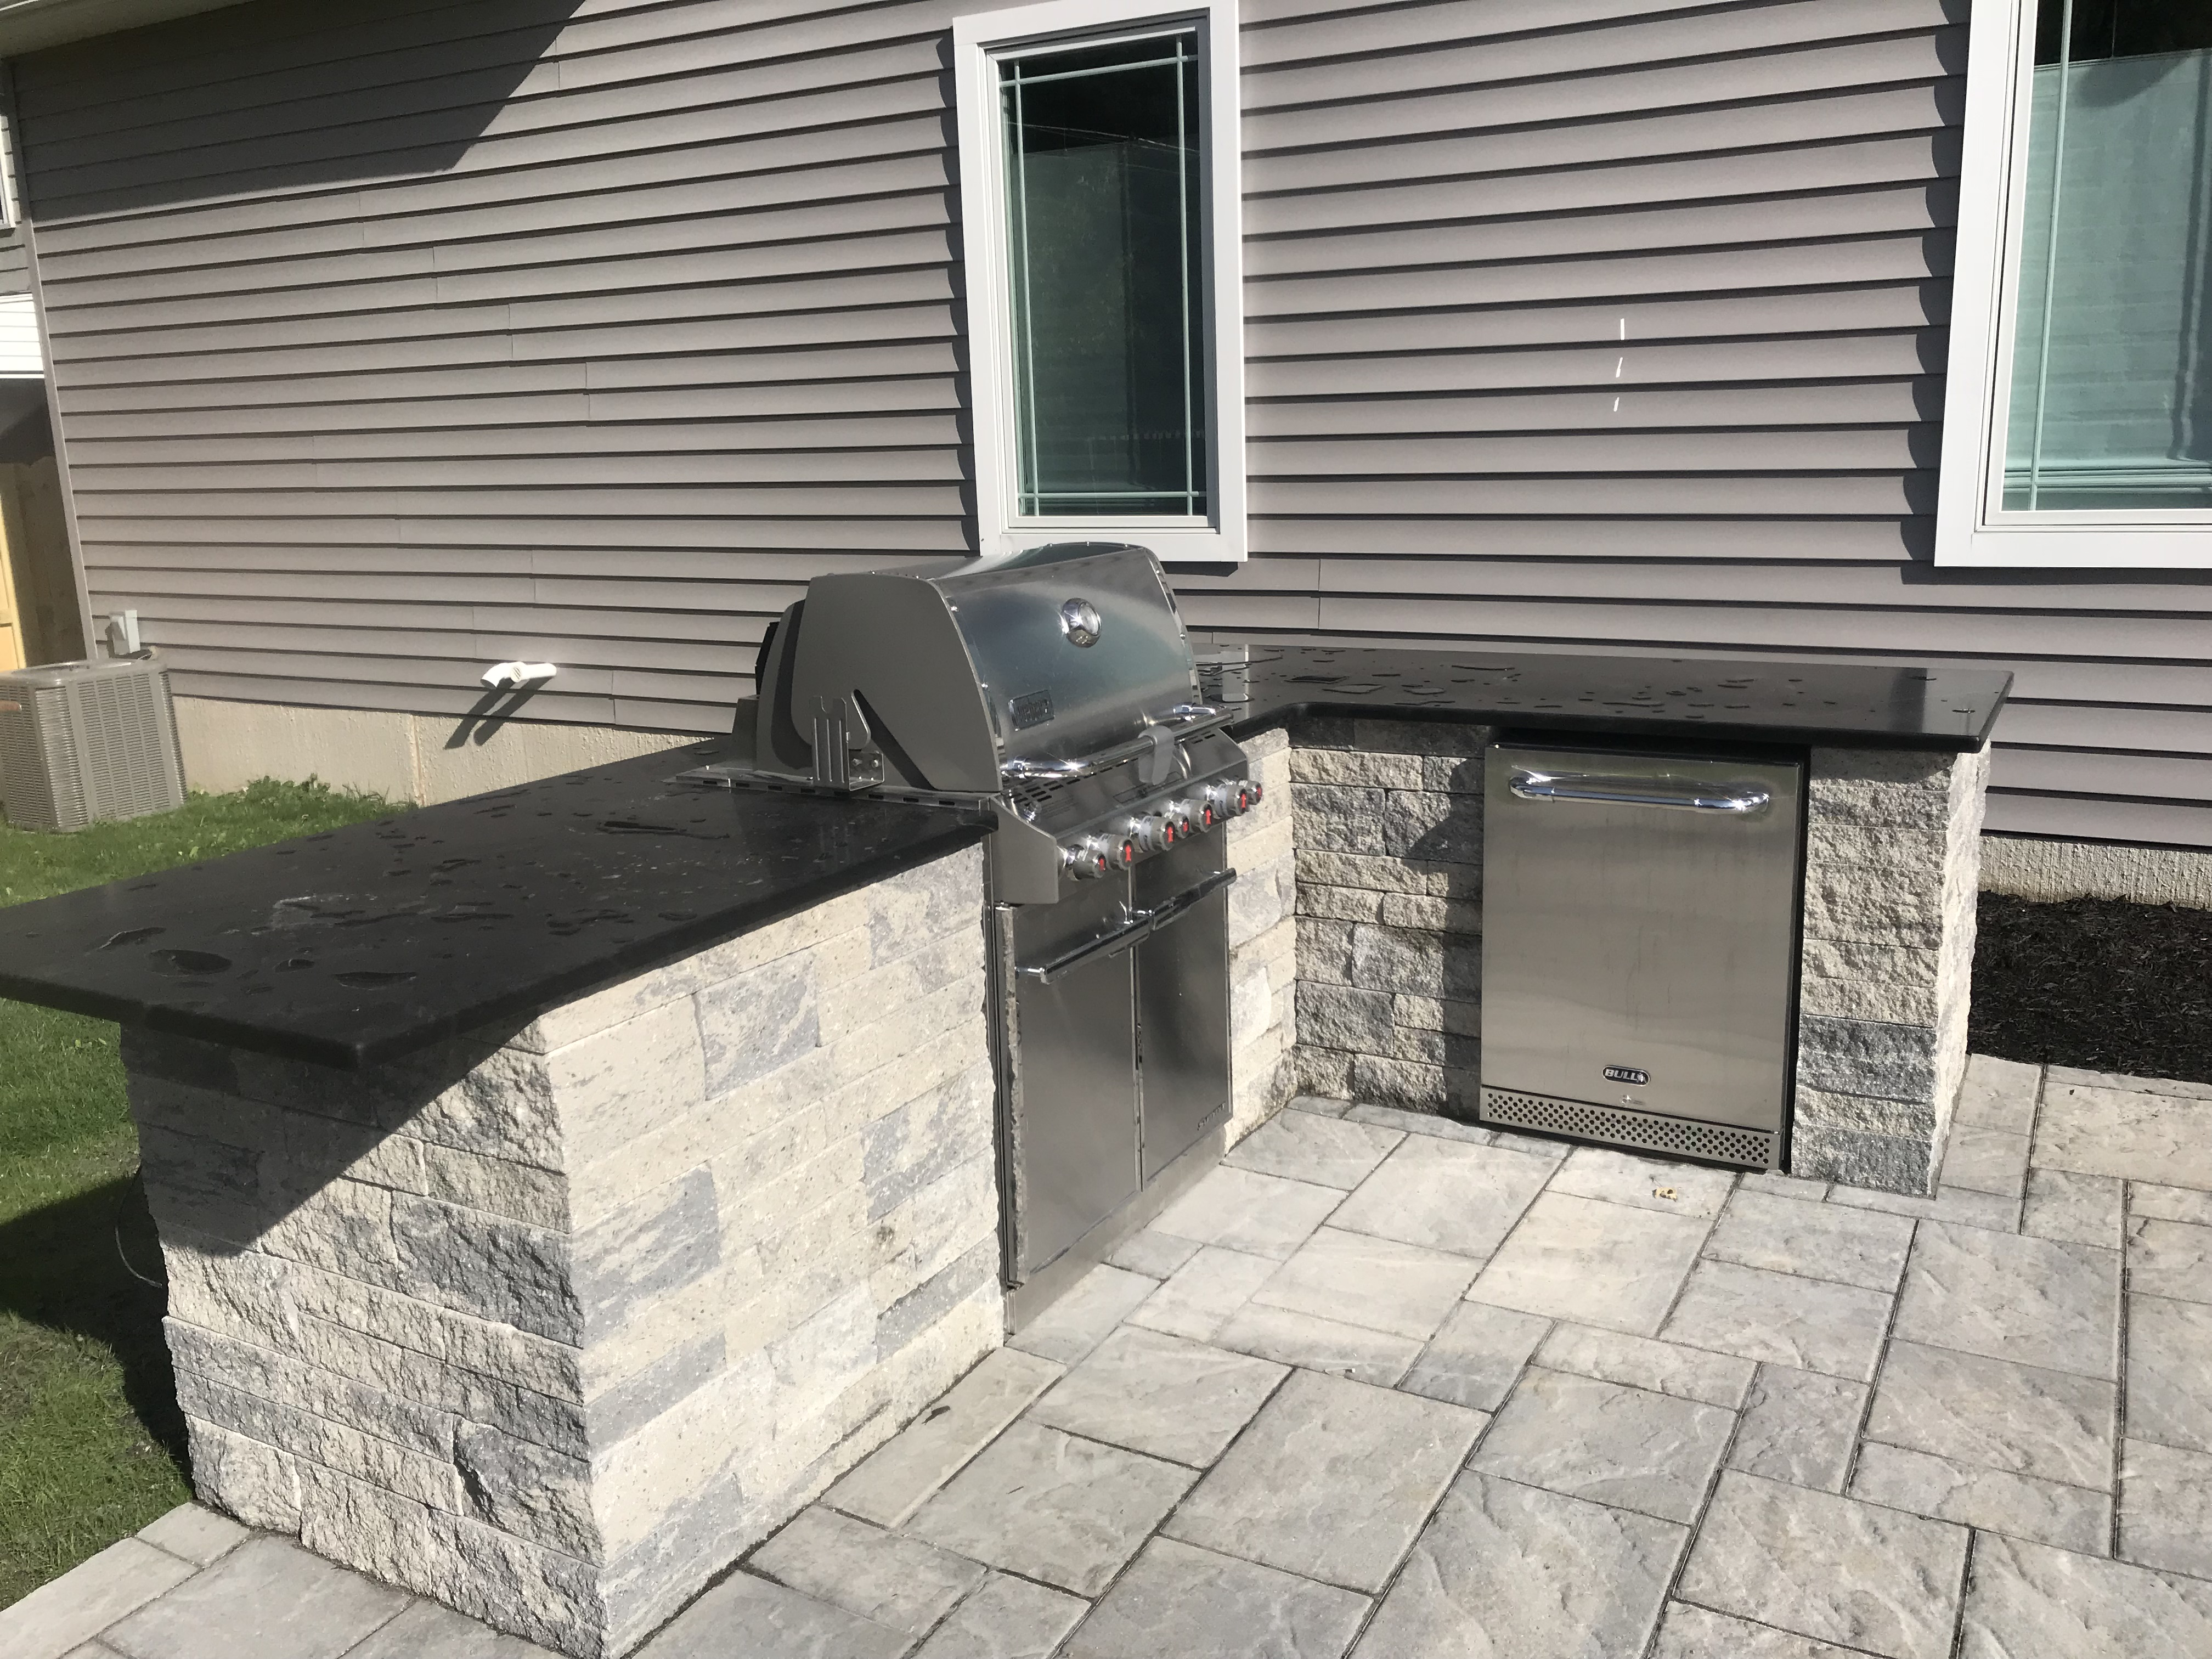 Outdoor Cooking Grill